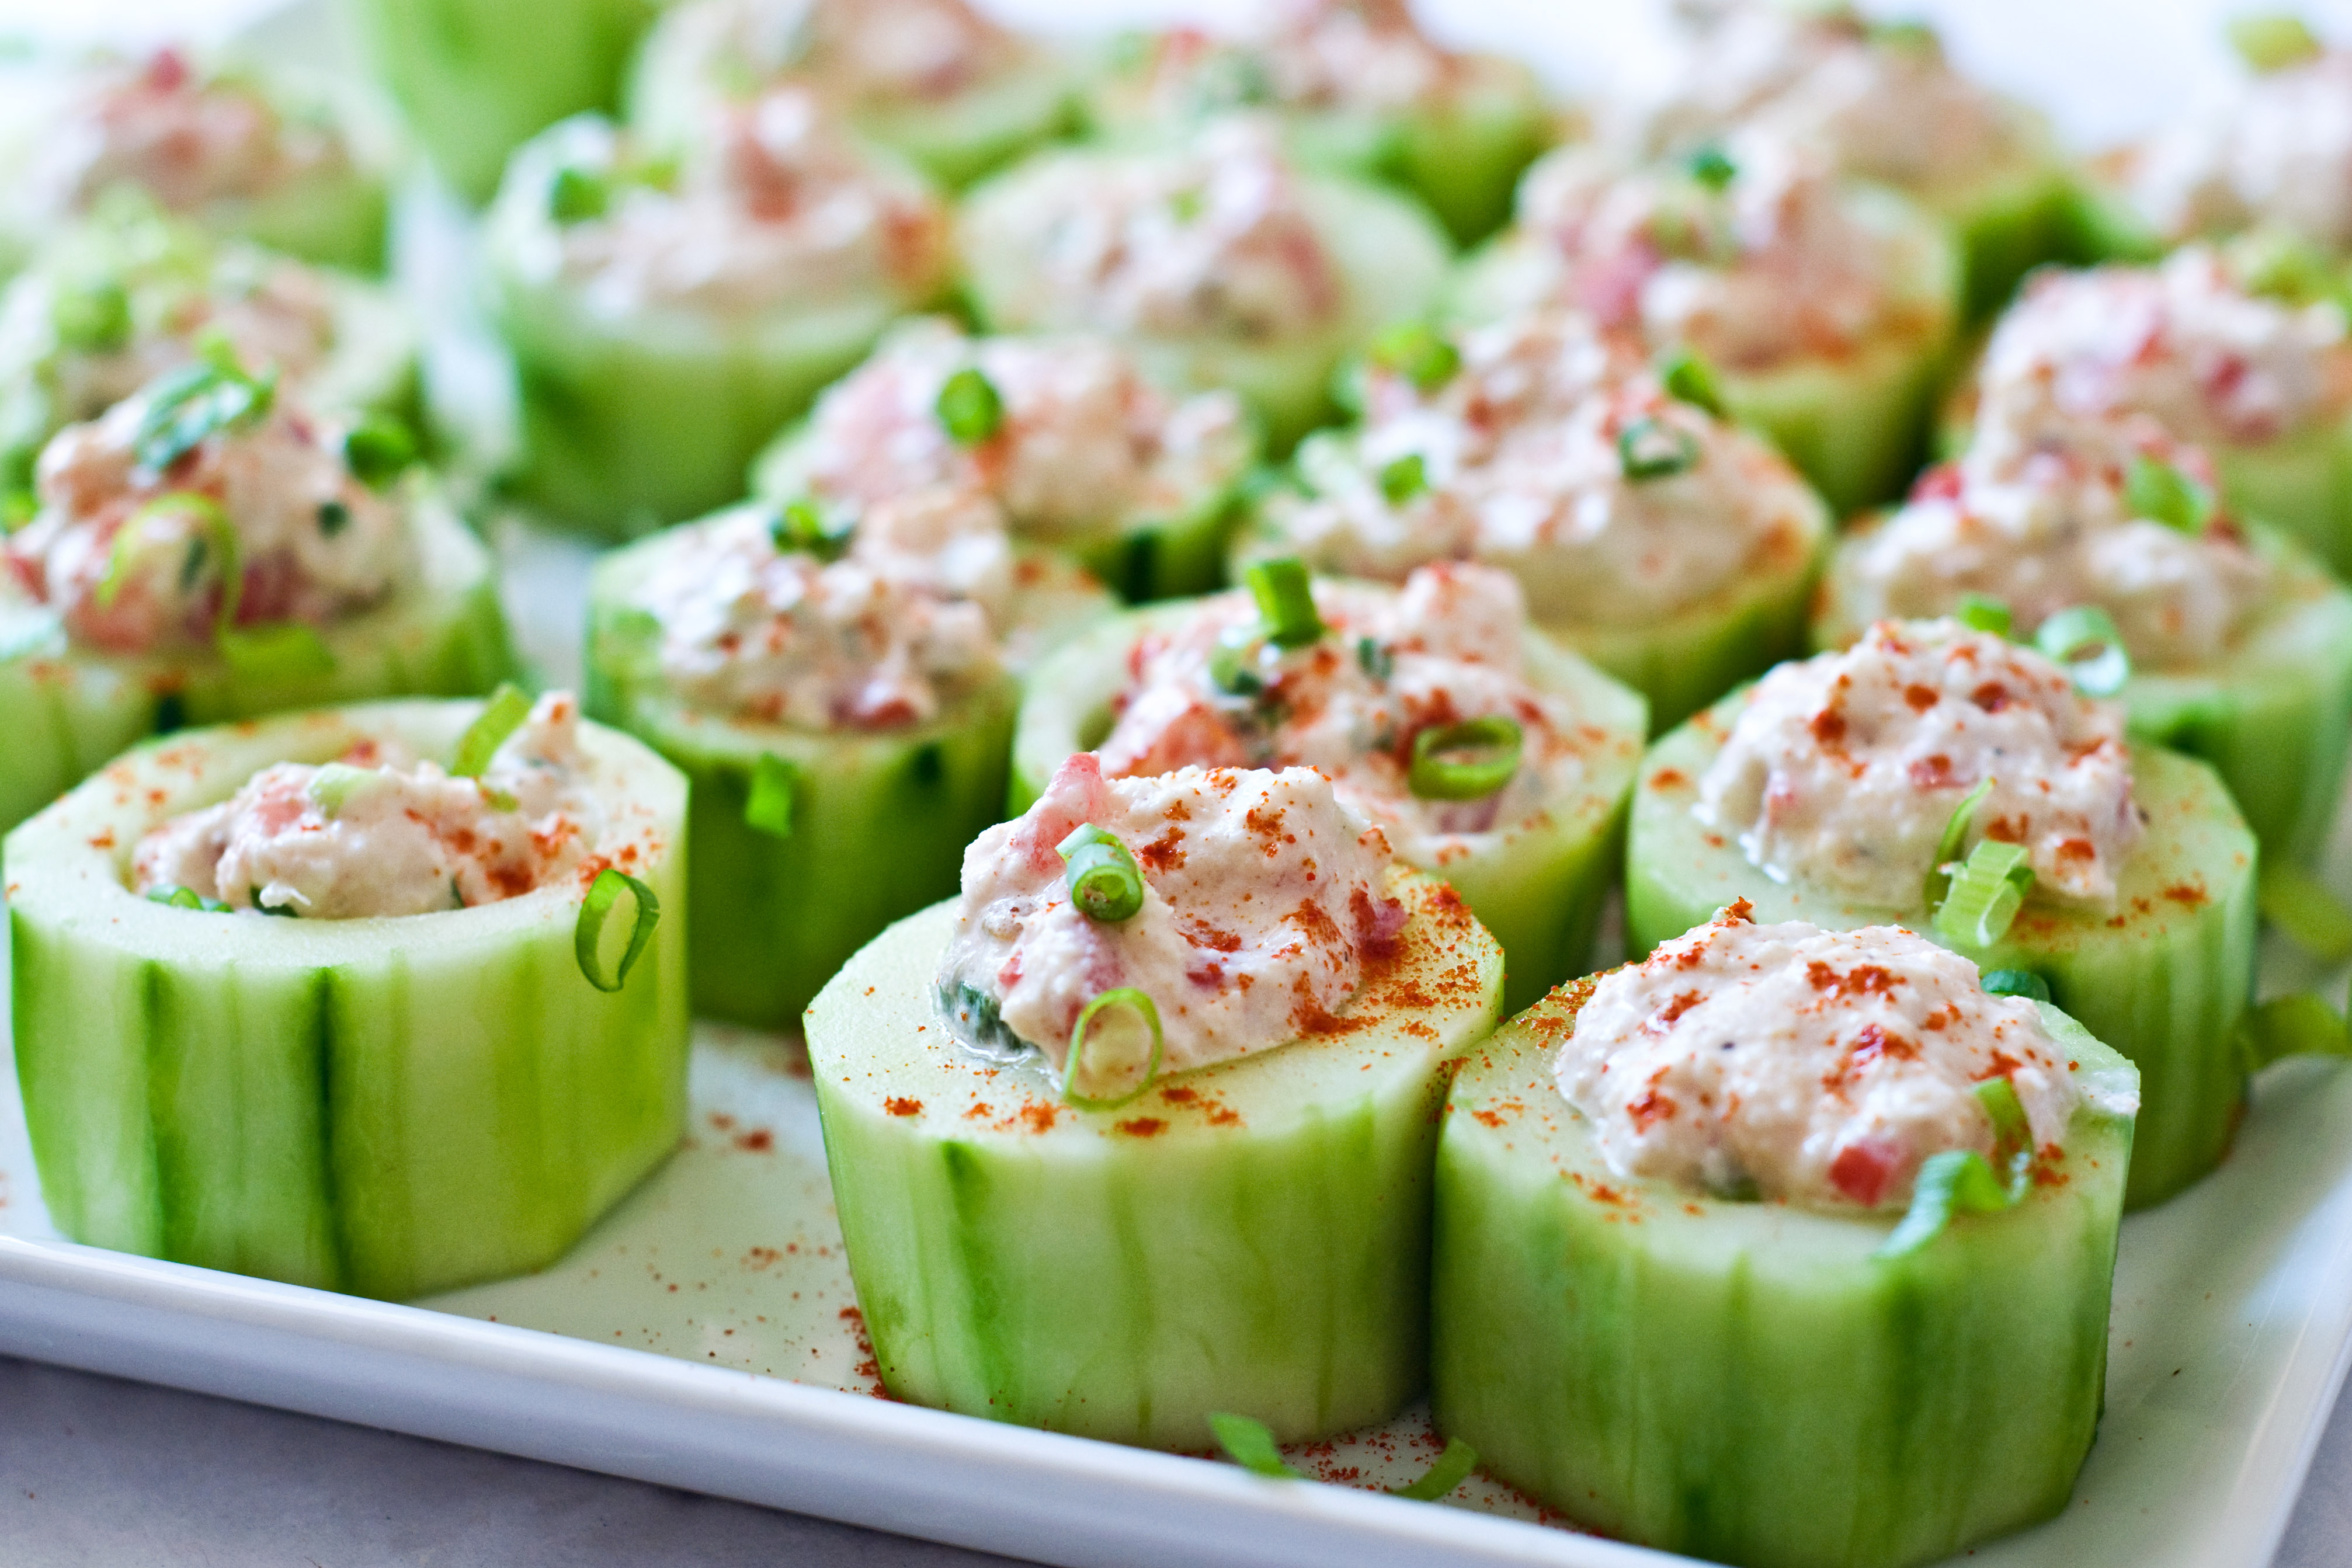 Cucumber cups stuffed with spicy crab domestic fits cucumber cups stuffed with spicy crab solutioingenieria Images